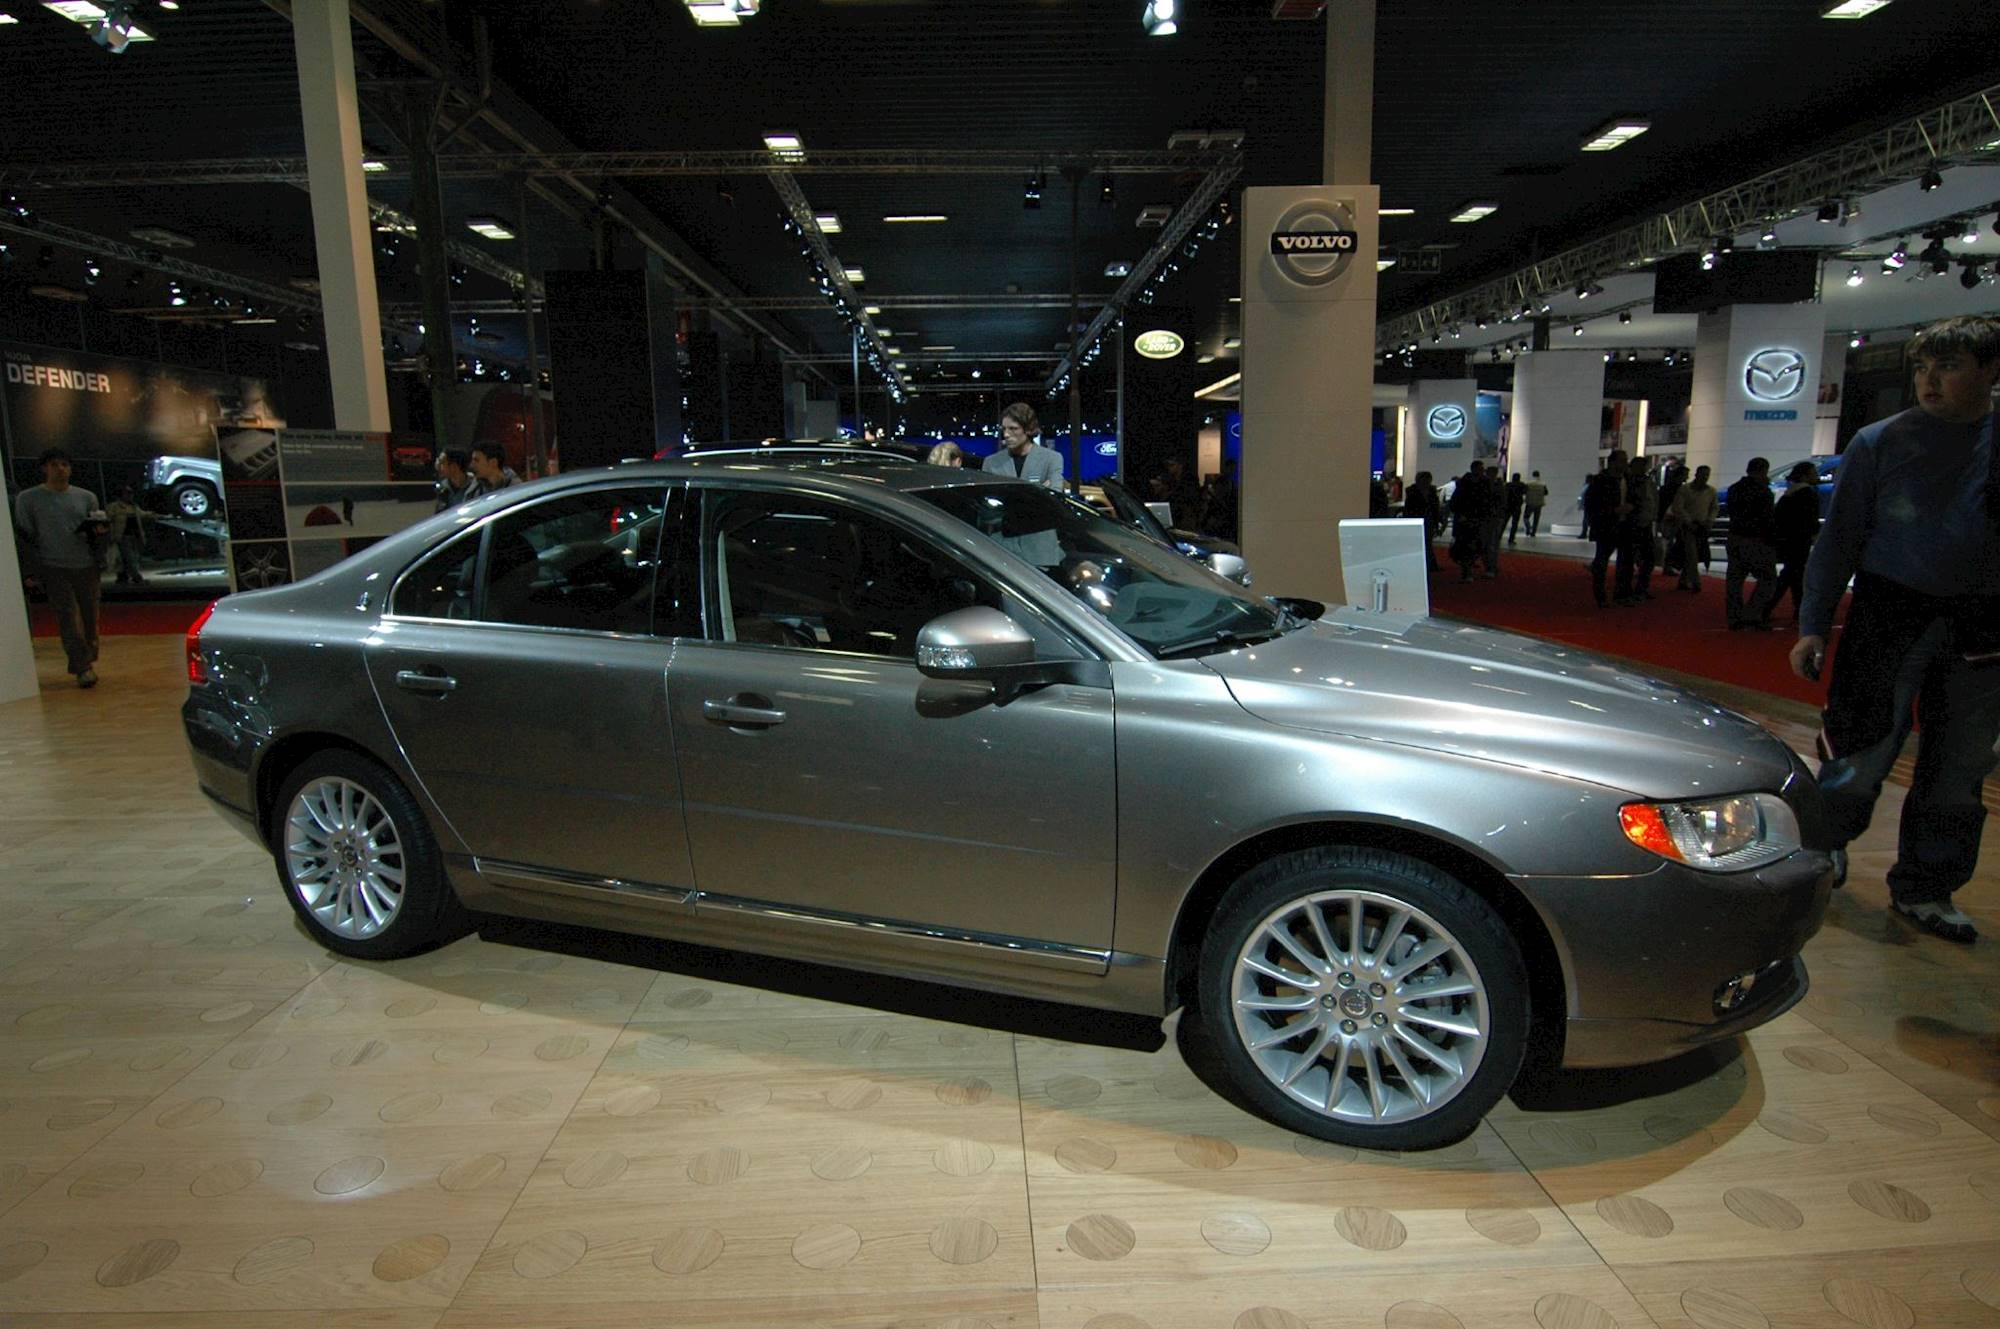 hight resolution of  file volvo s80 flickr gaspa jpg wikimedia commons 2011